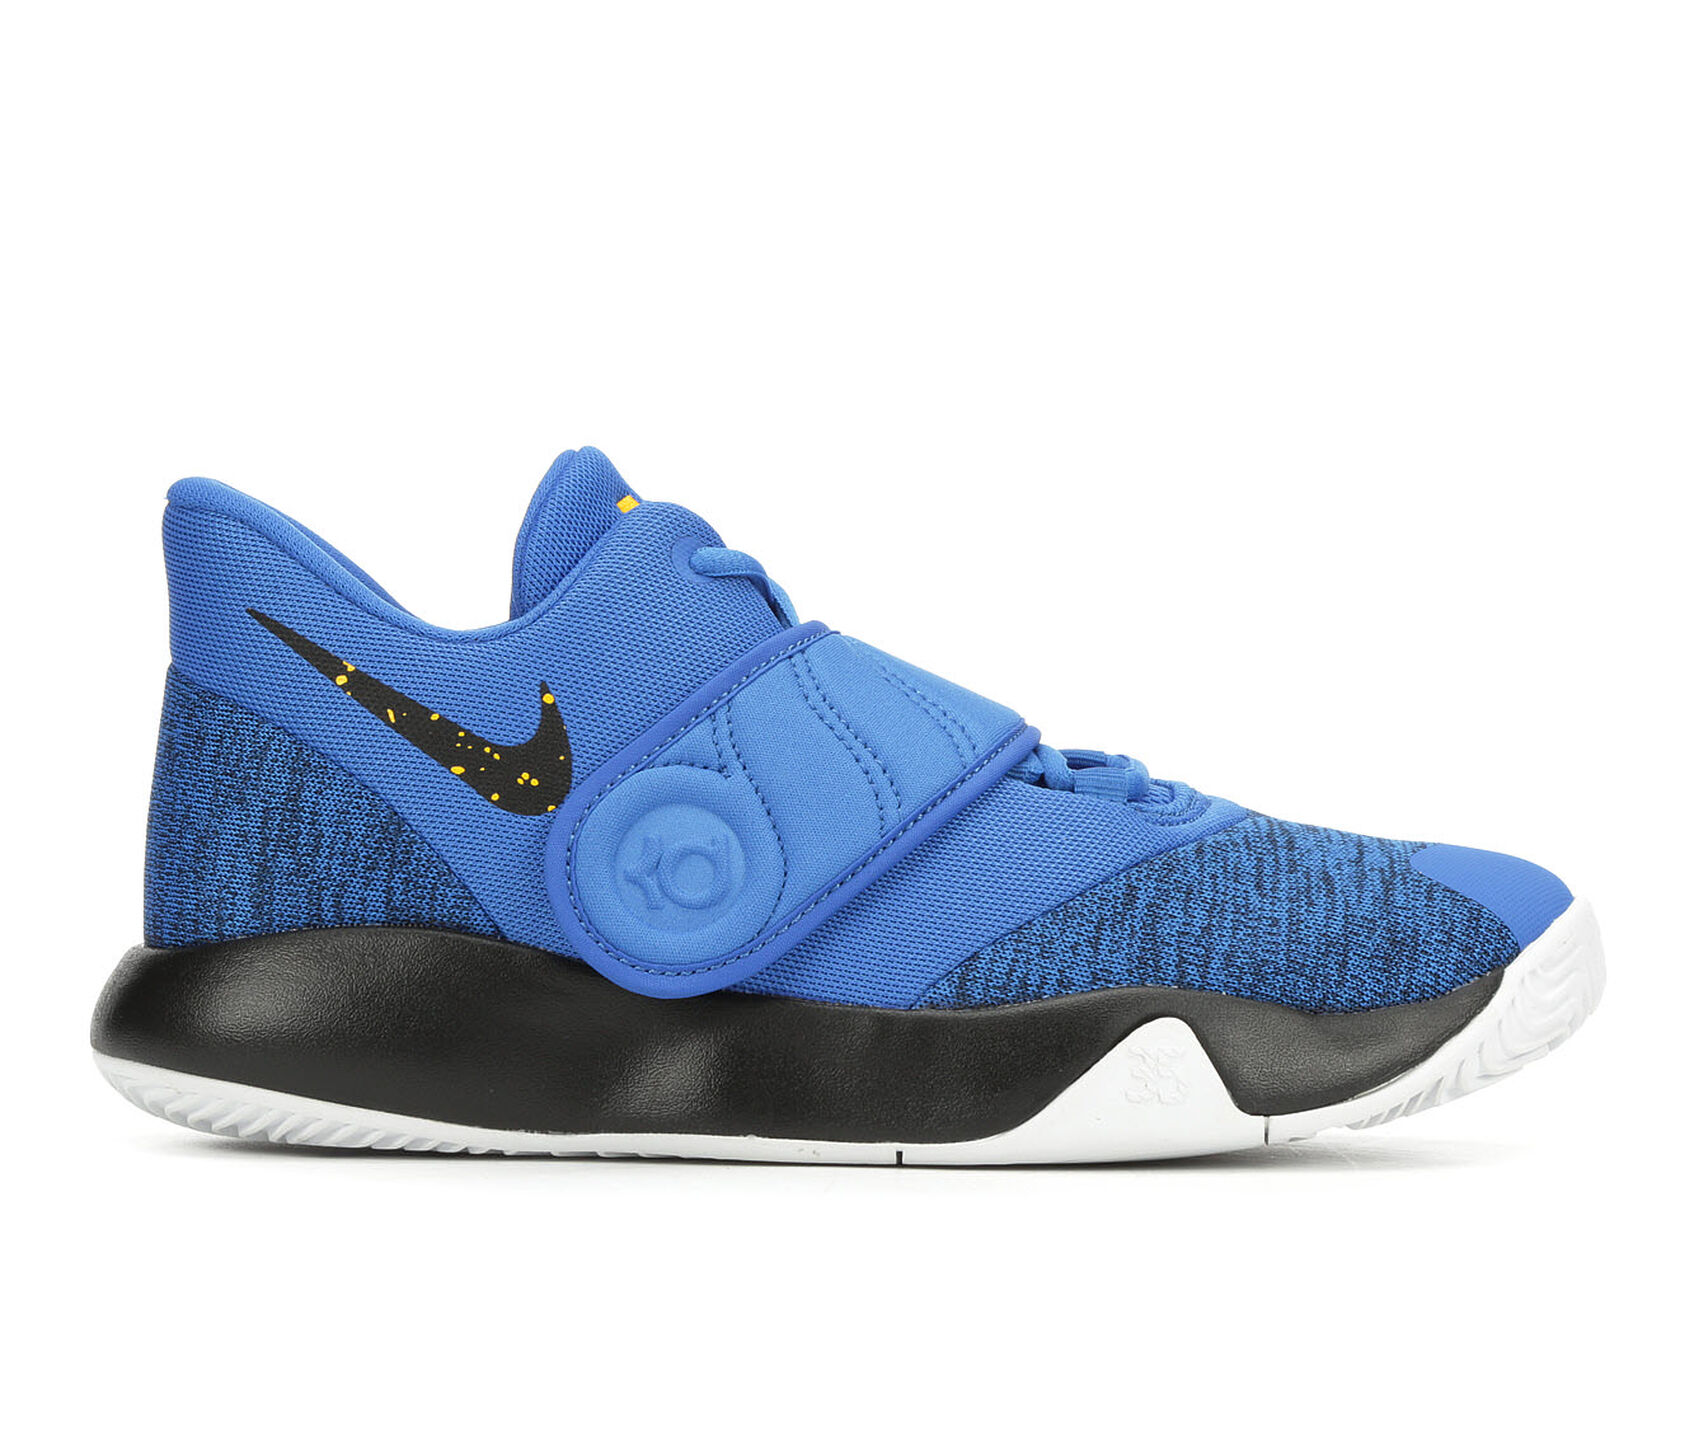 da6cb3e477e3 ... Nike Big Kid KD Trey 5 VI High Top Basketball Shoes. Previous